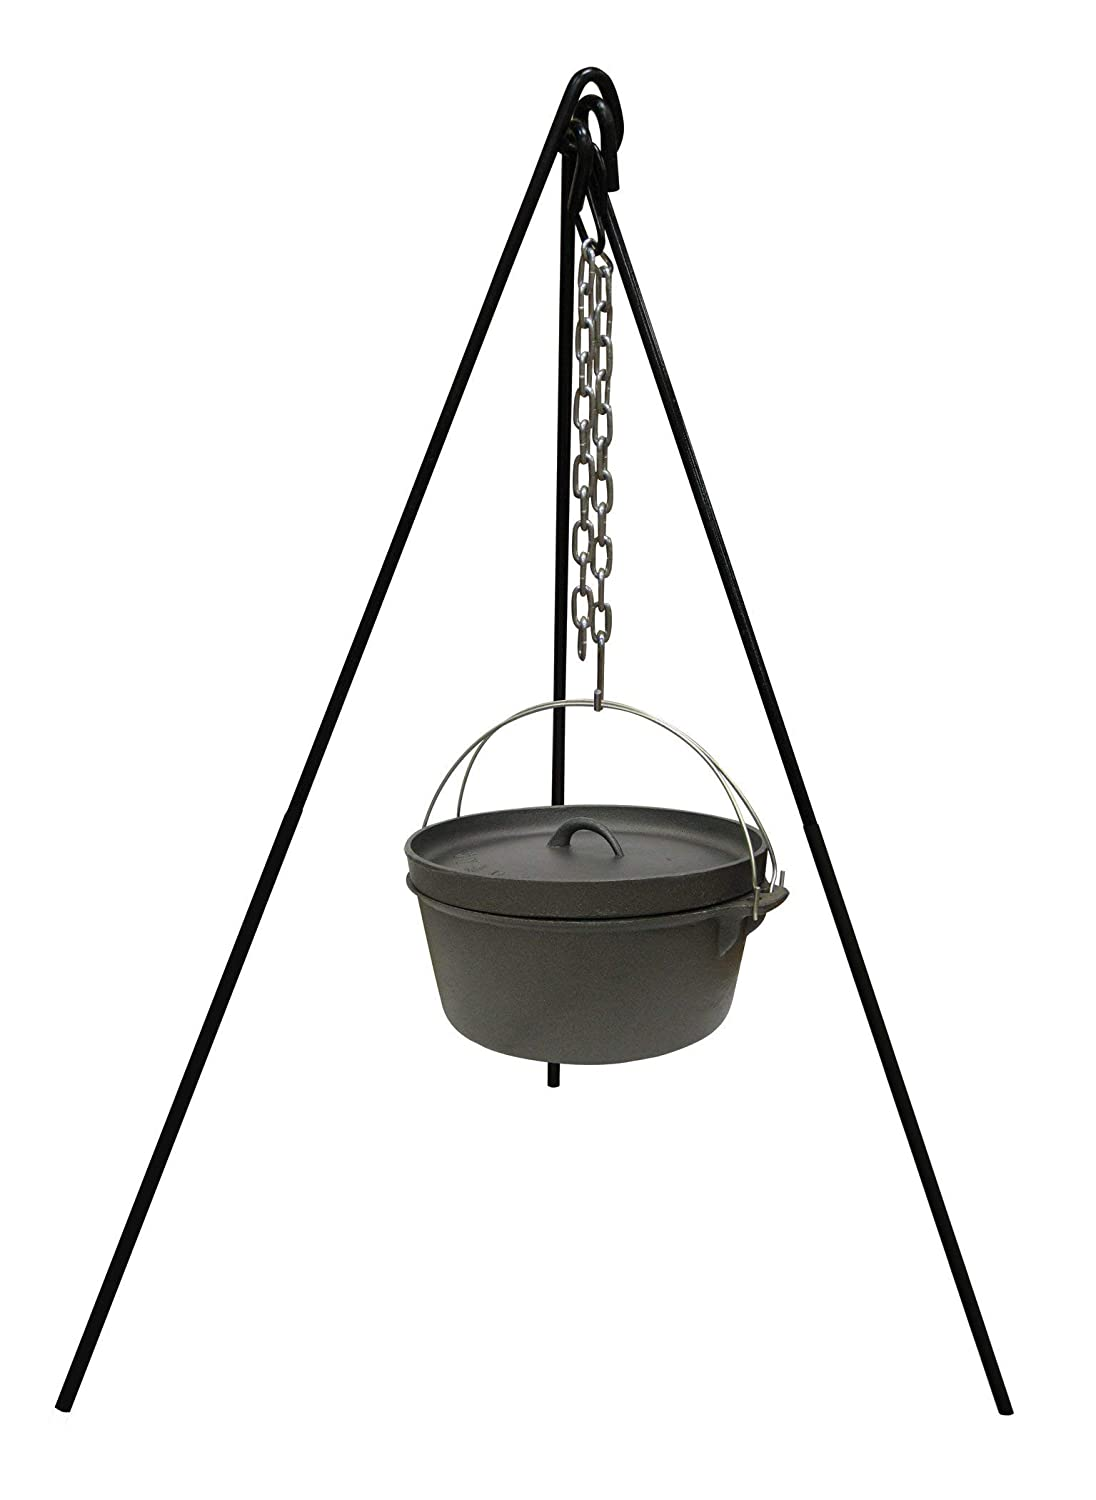 Stansport 15997 Cast Iron Camp Fire Tripod (Renewed)